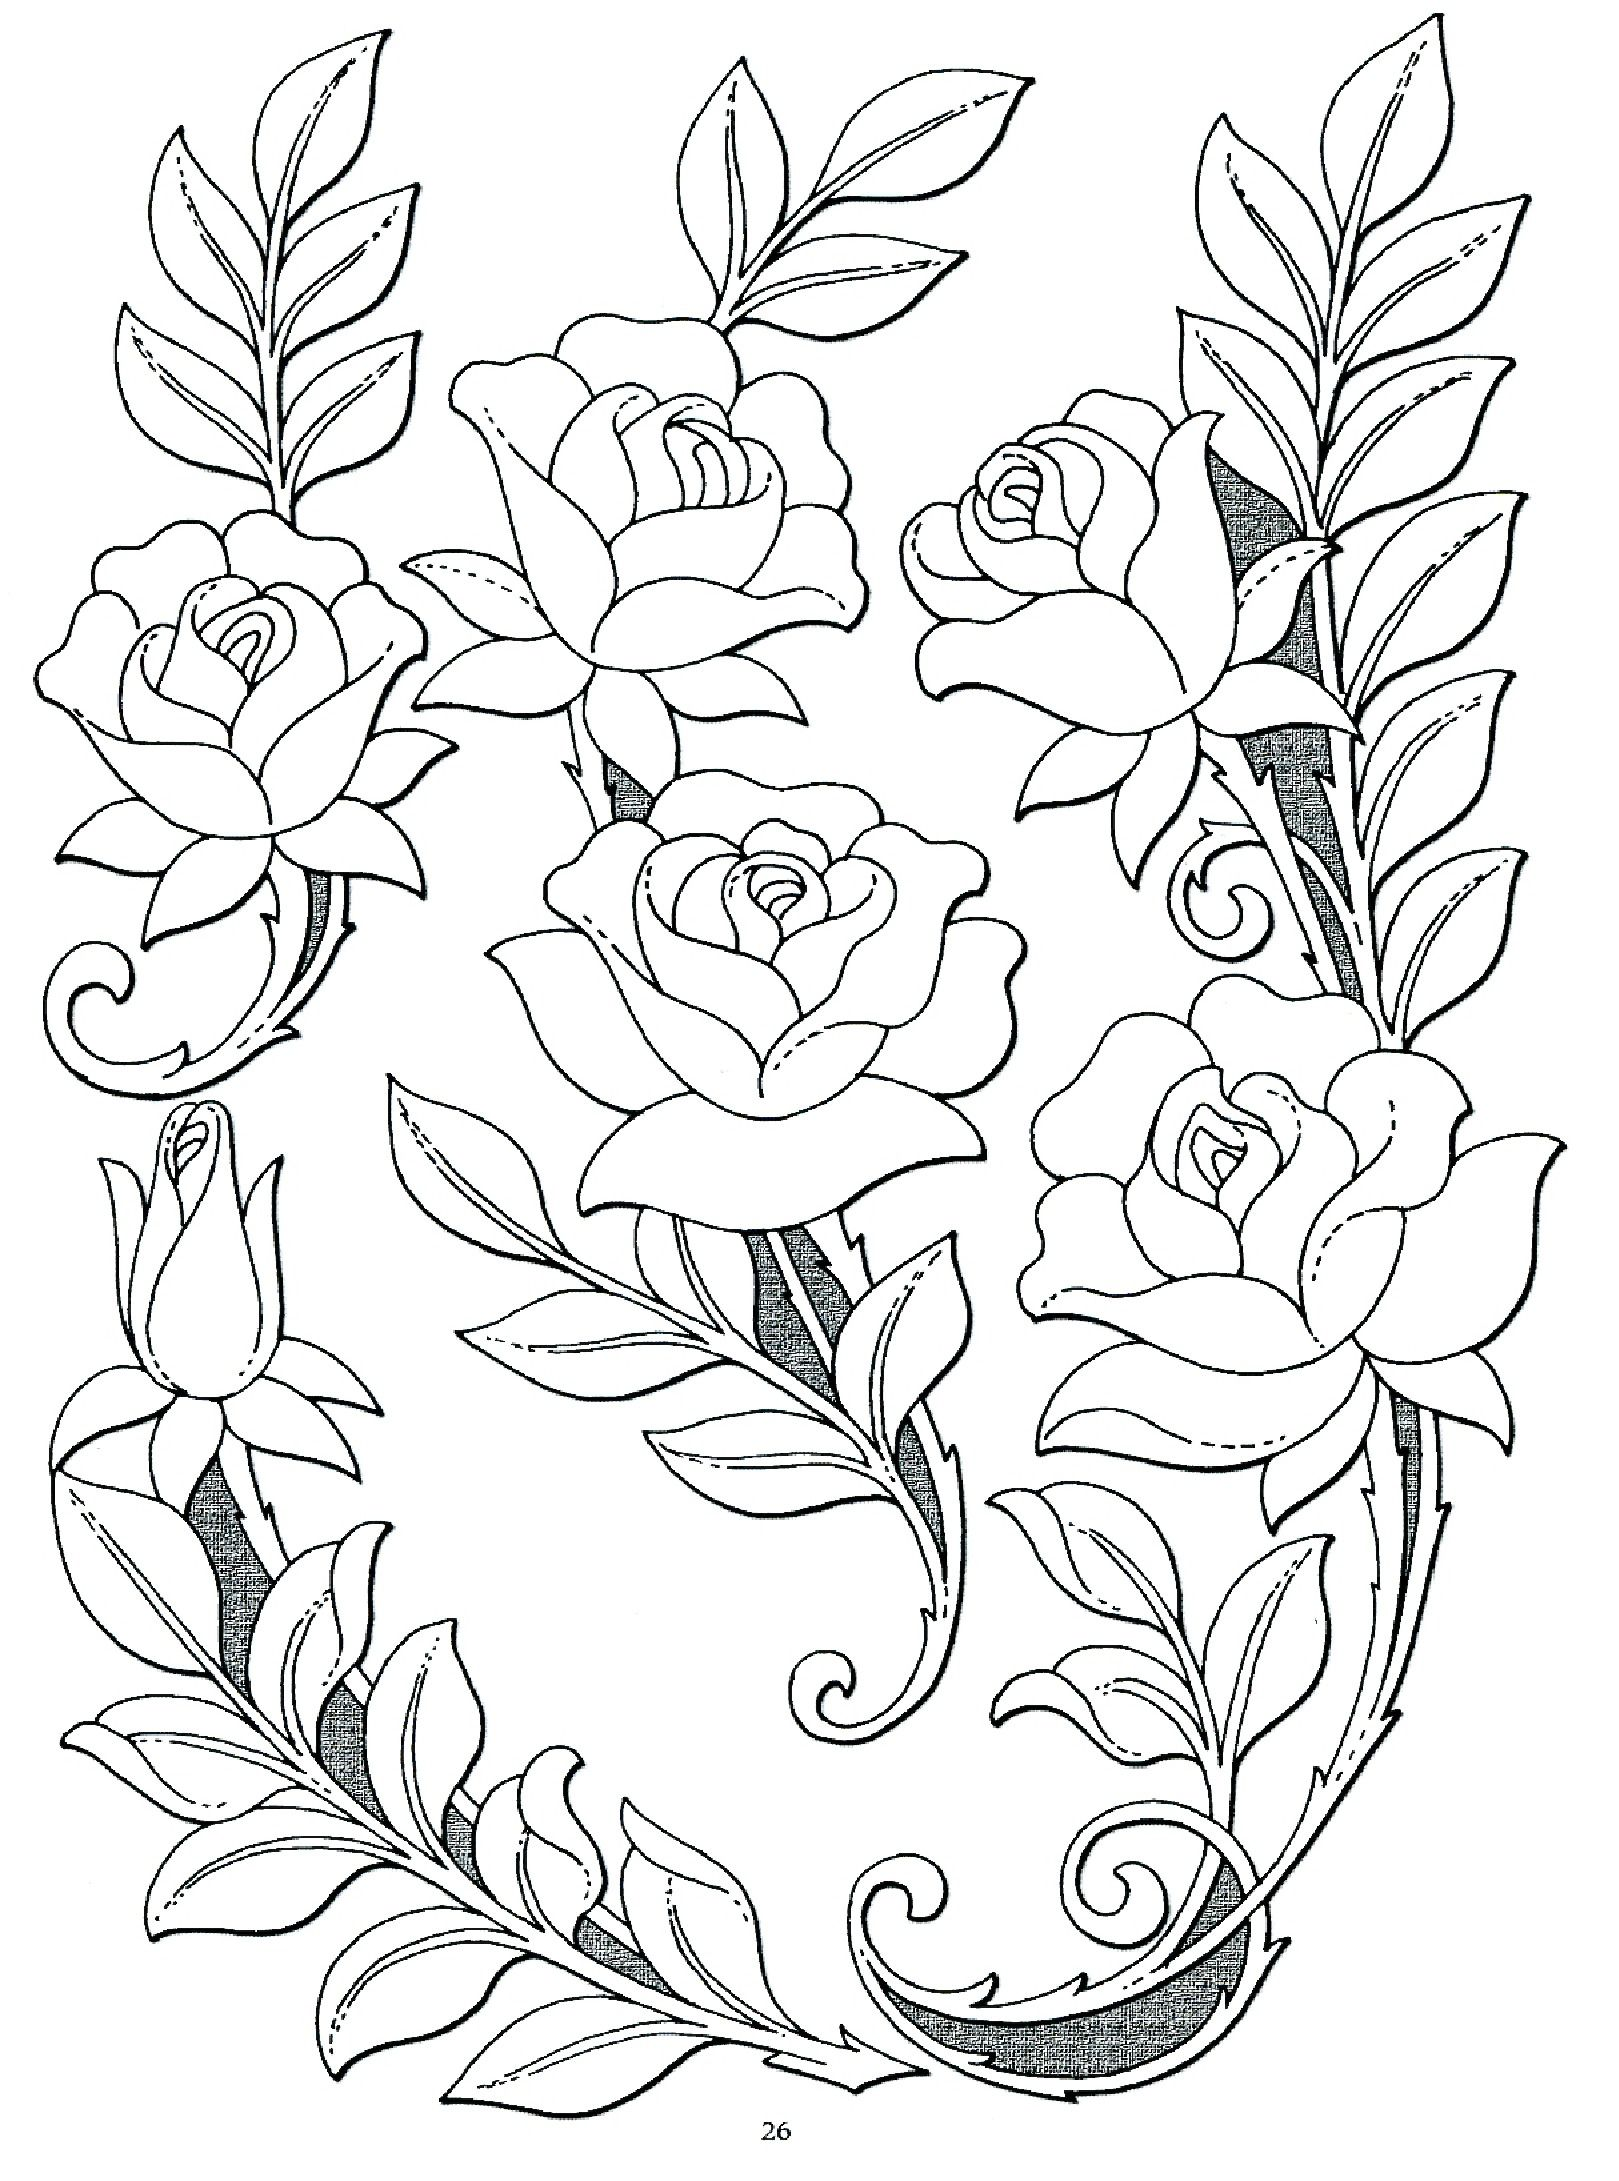 Pin by sergey paramonov on floral patterns pinterest embroidery patterns machine embroidery hand embroidery card patterns flower patterns drawing flowers rose flowers leather pattern parchment craft bankloansurffo Images